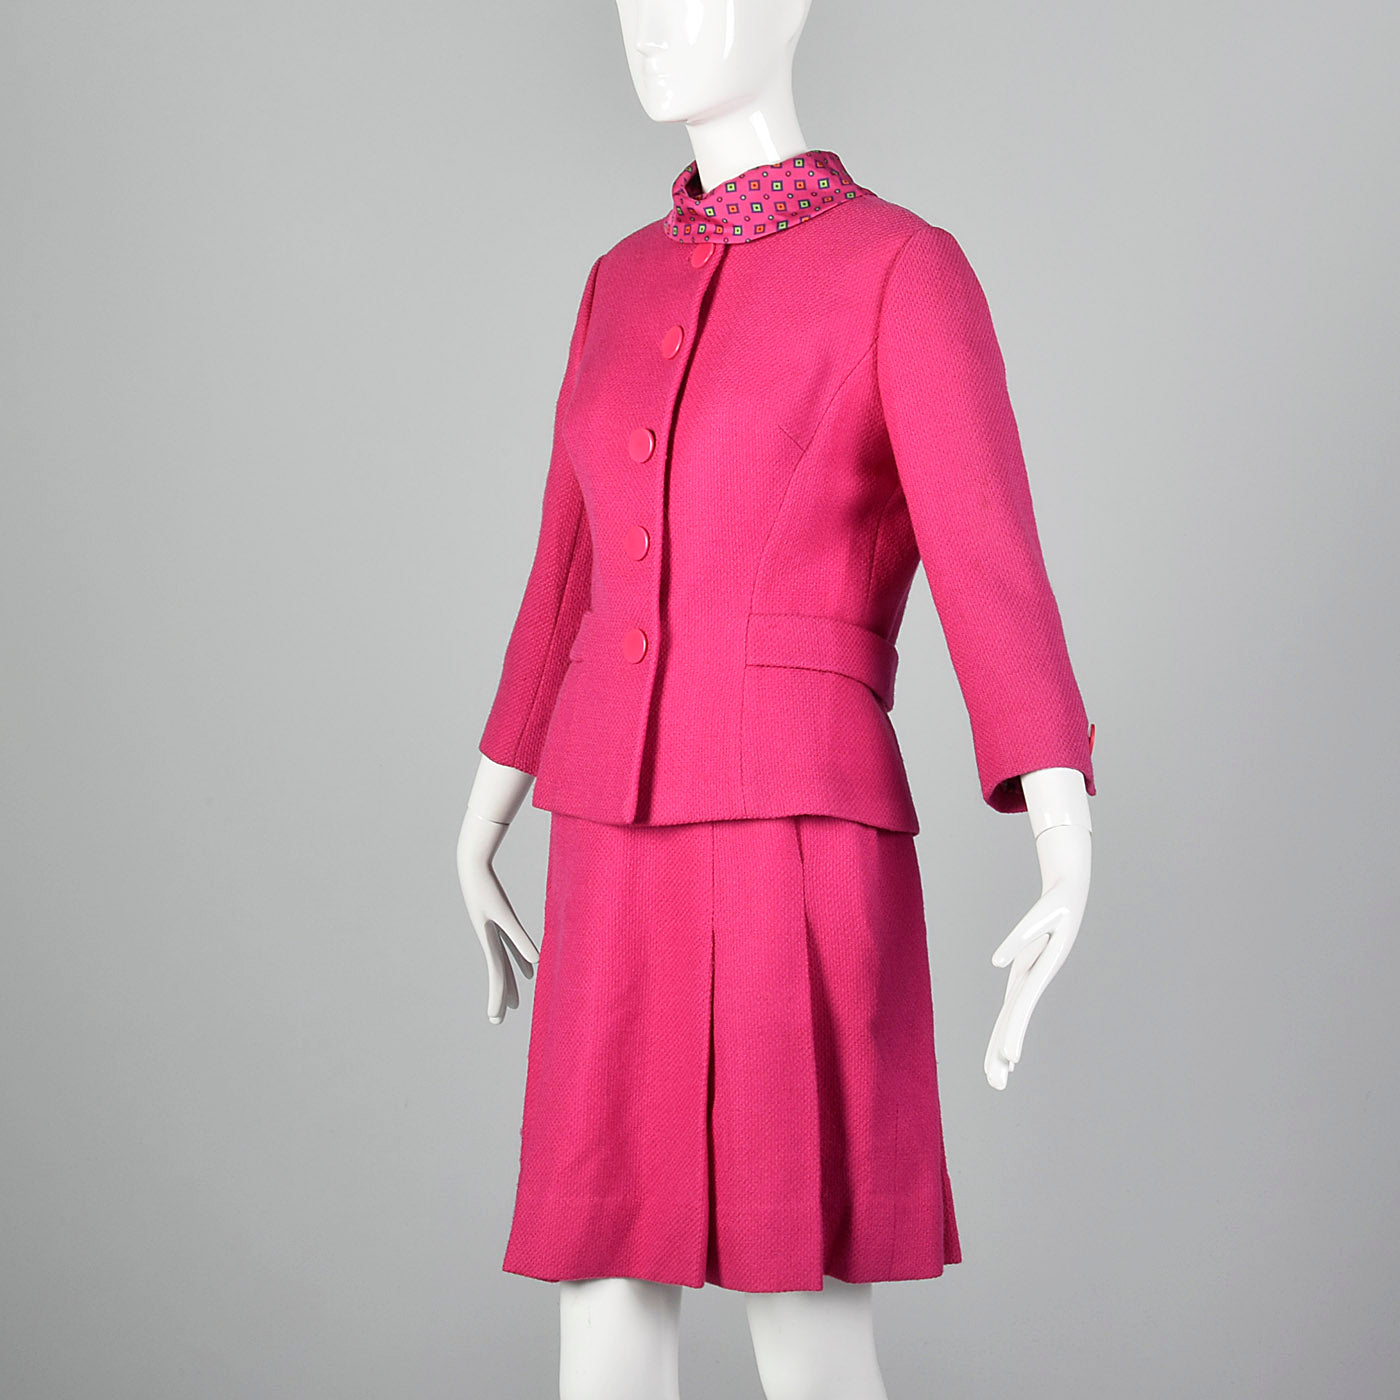 1960s Matthews Hot Pink Skirt Suit